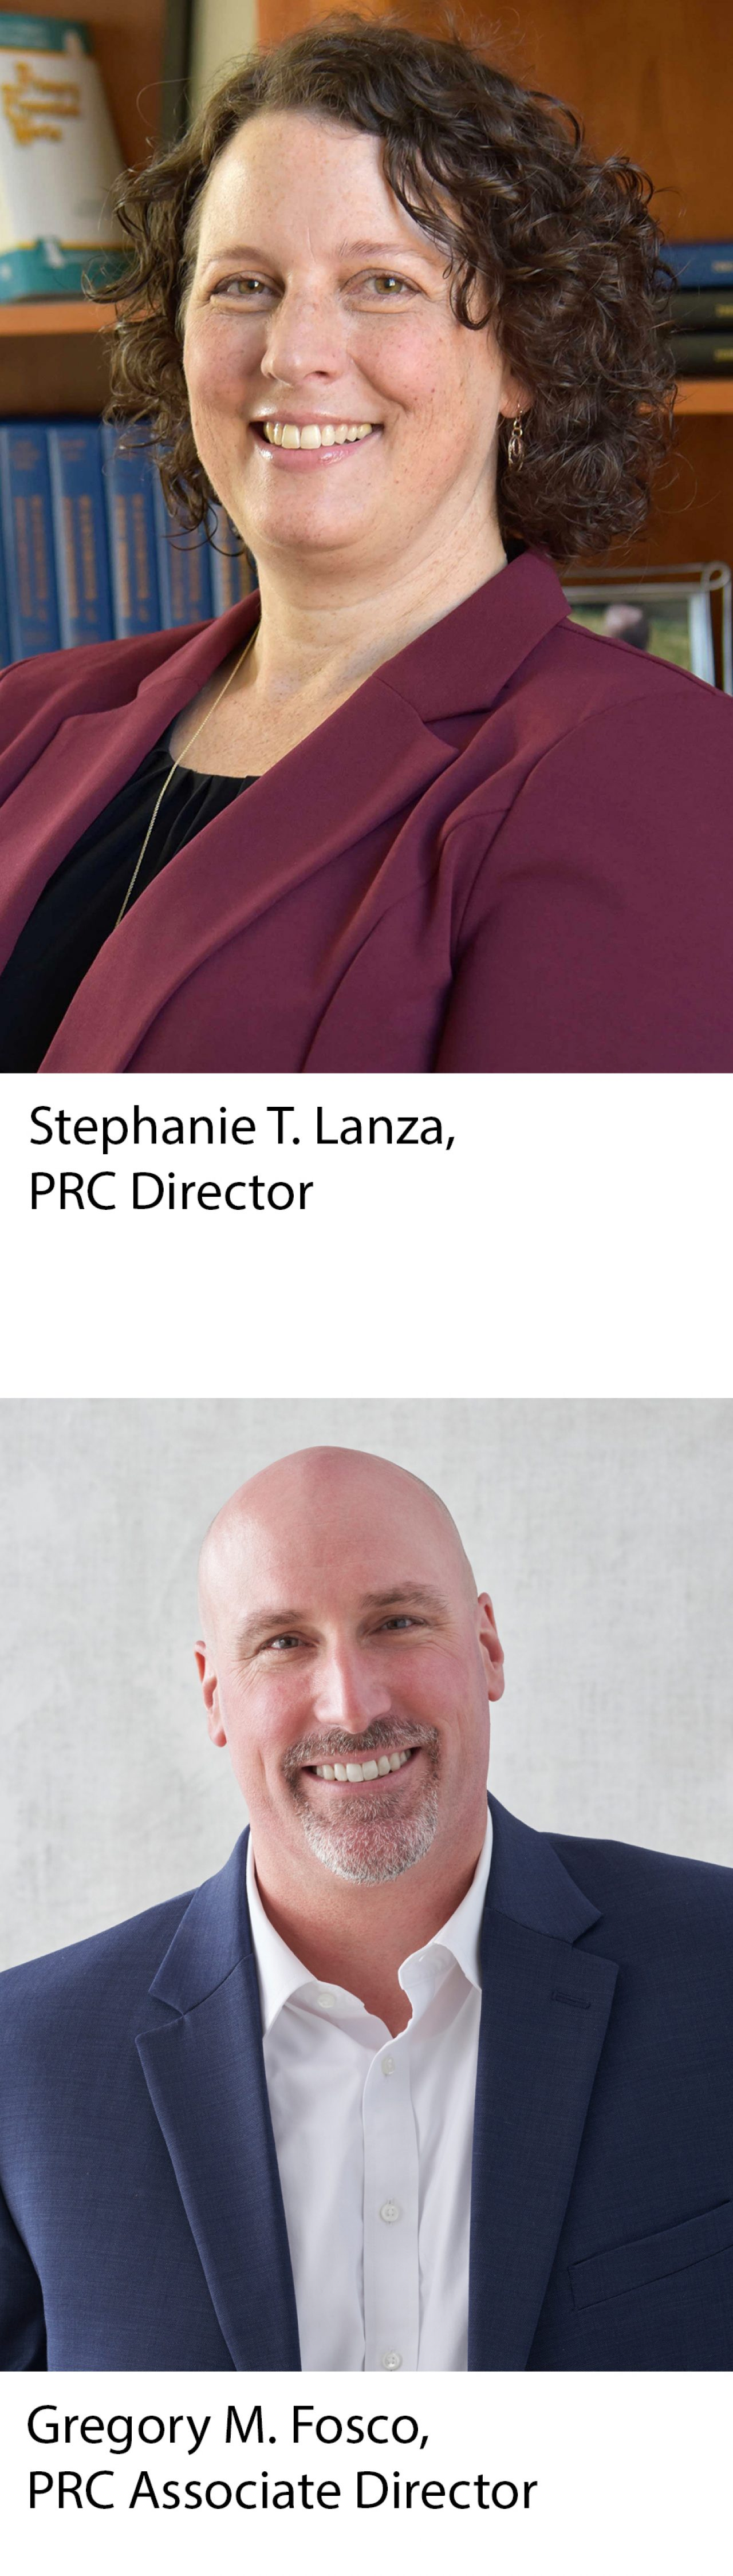 Portraits of PRC Director Stephanie Lanza and PRC Associate Director Greg Fosco